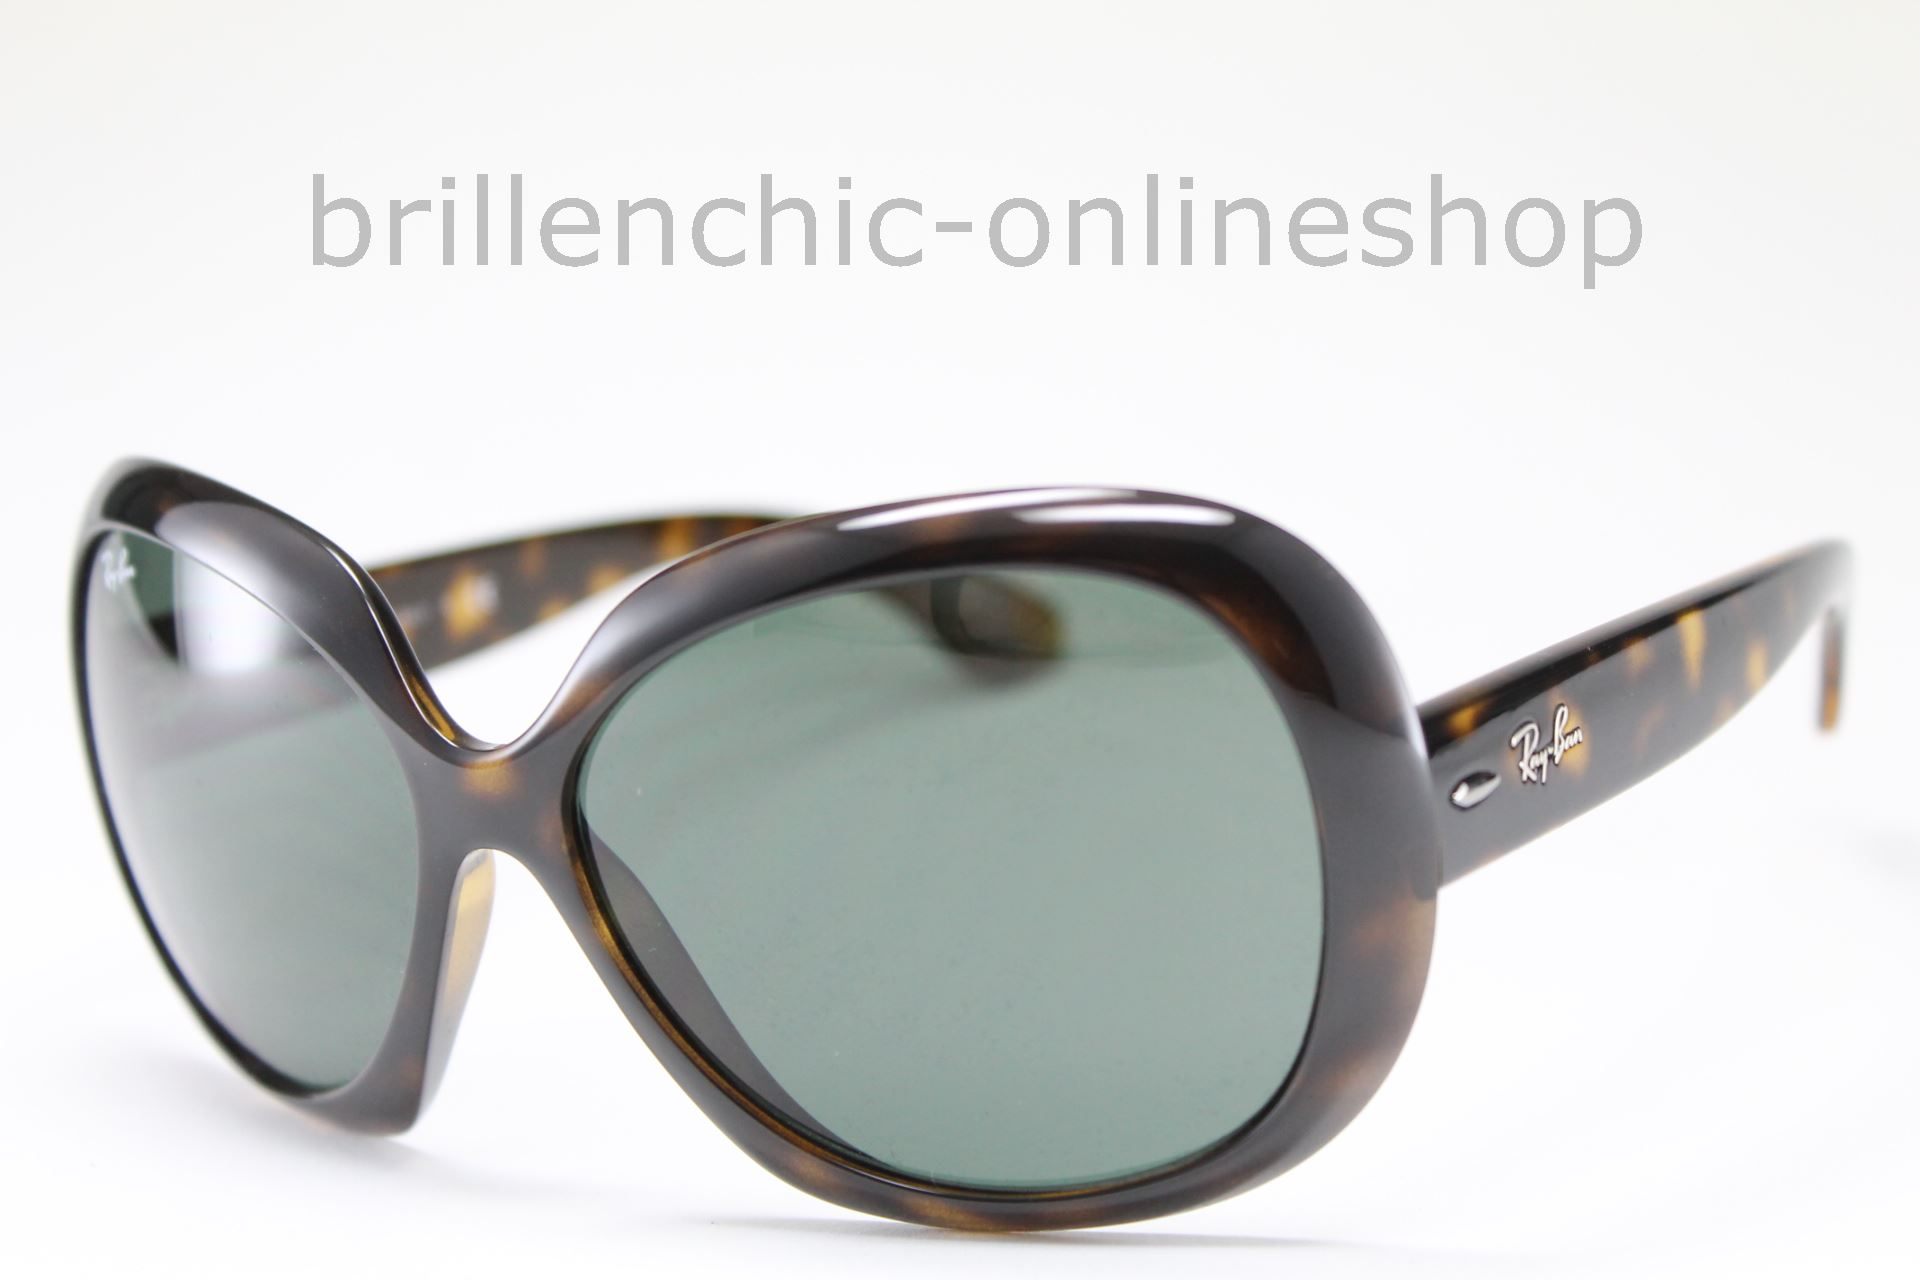 dbd0063bd Brillenchic-onlineshop in Berlin - Ray Ban JACKIE OHH II RB 4098 710 ...